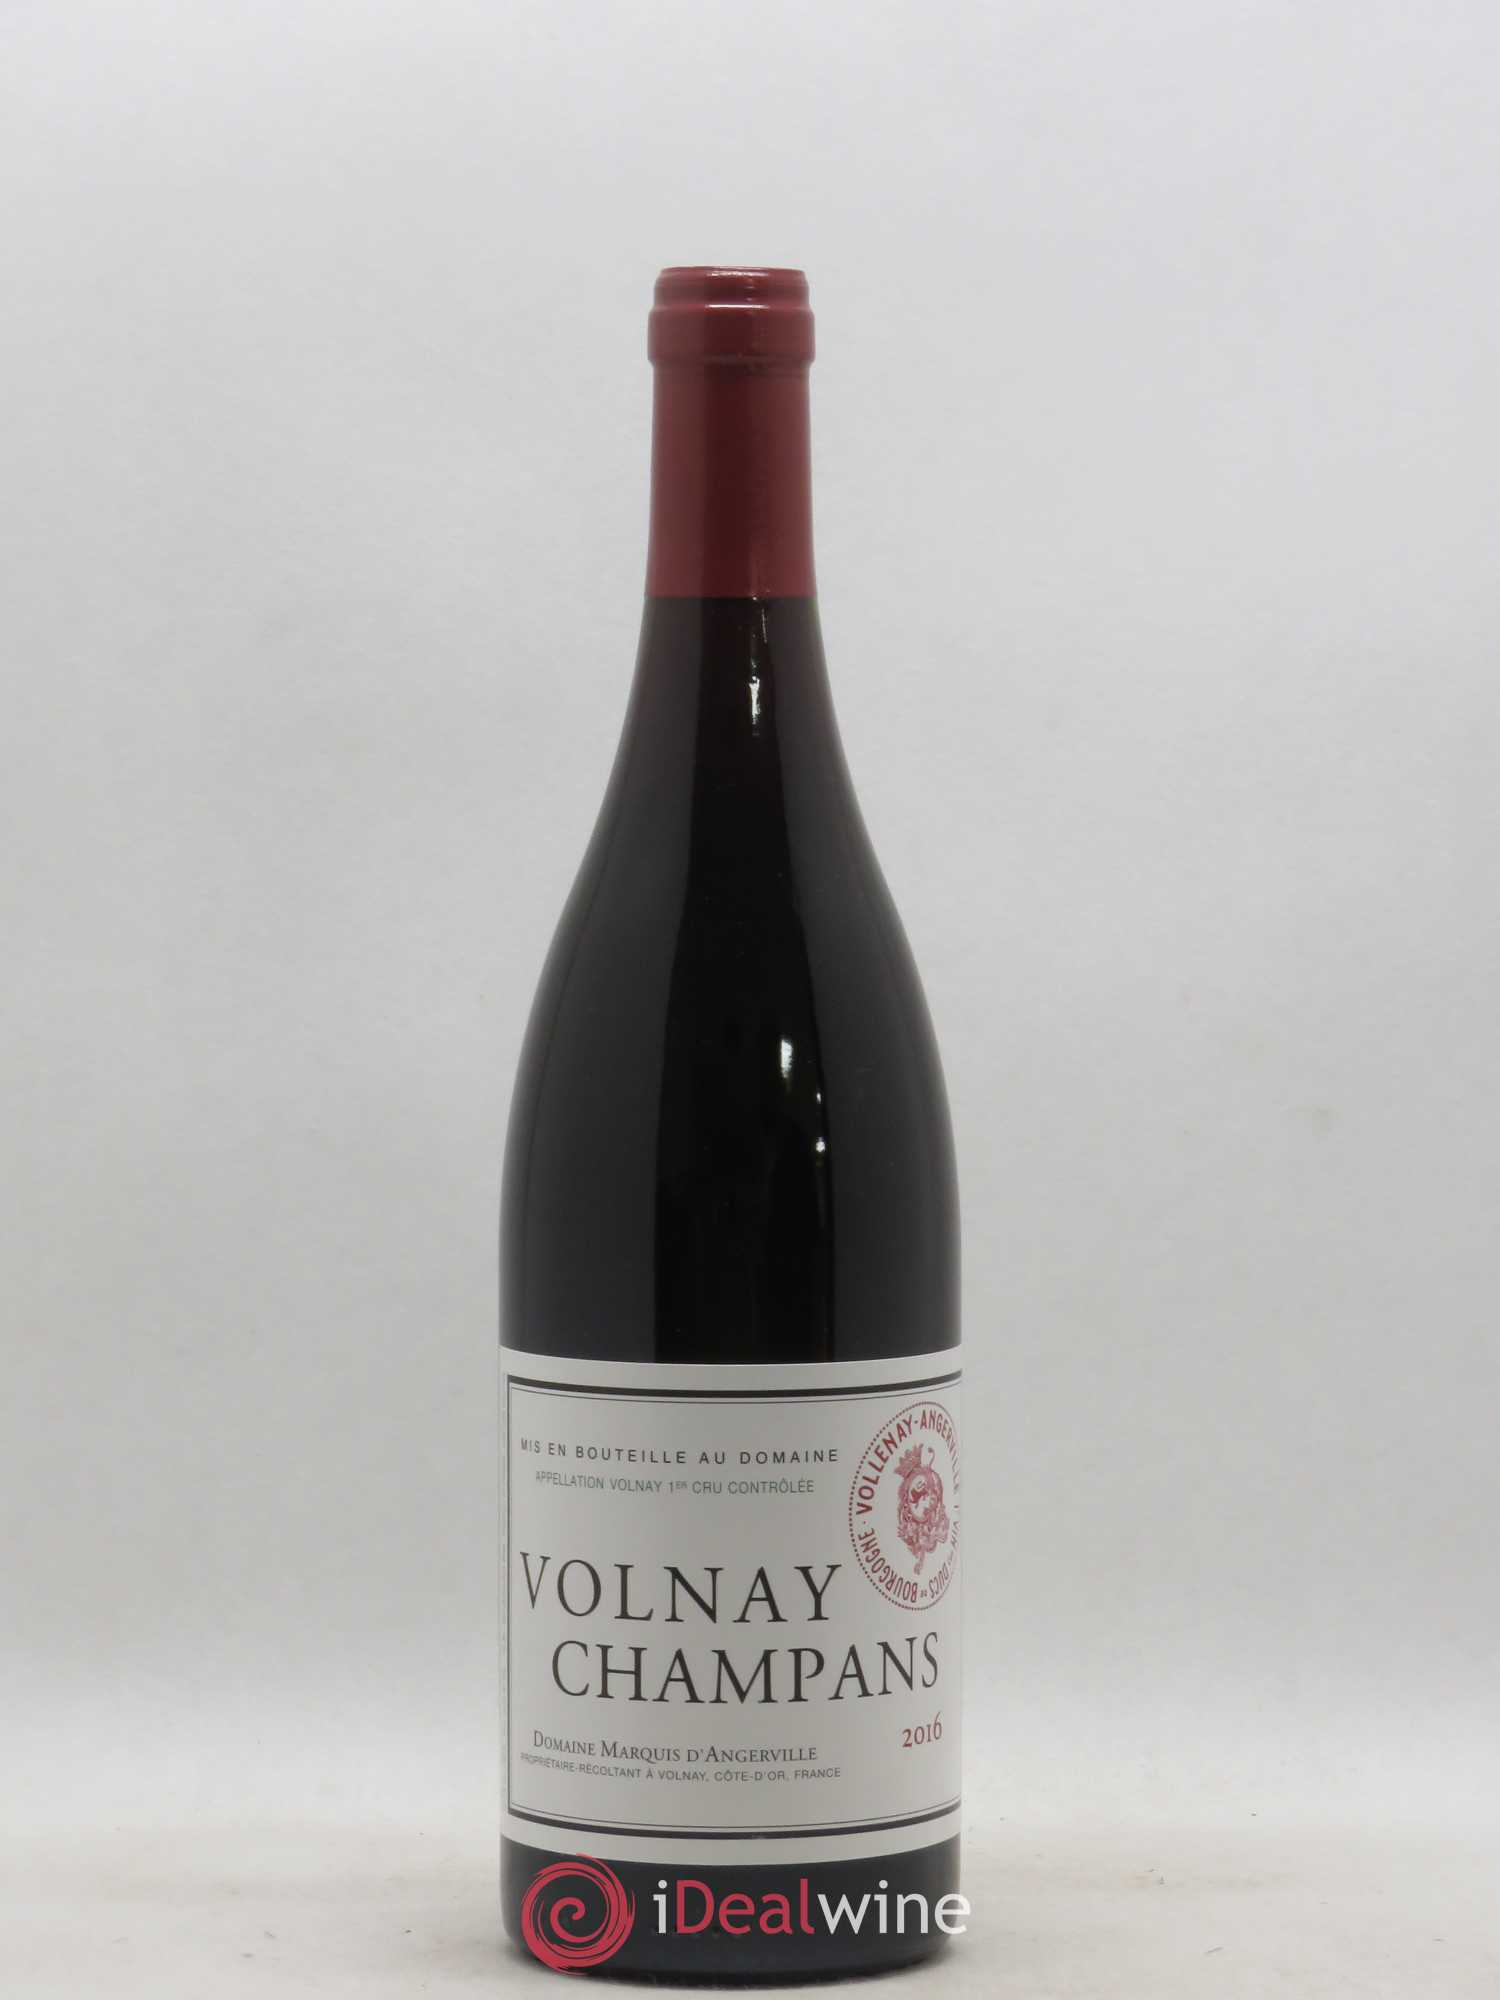 Volnay 1er Cru Champans Marquis d'Angerville (Domaine)  2016 - Lot of 1 Bottle